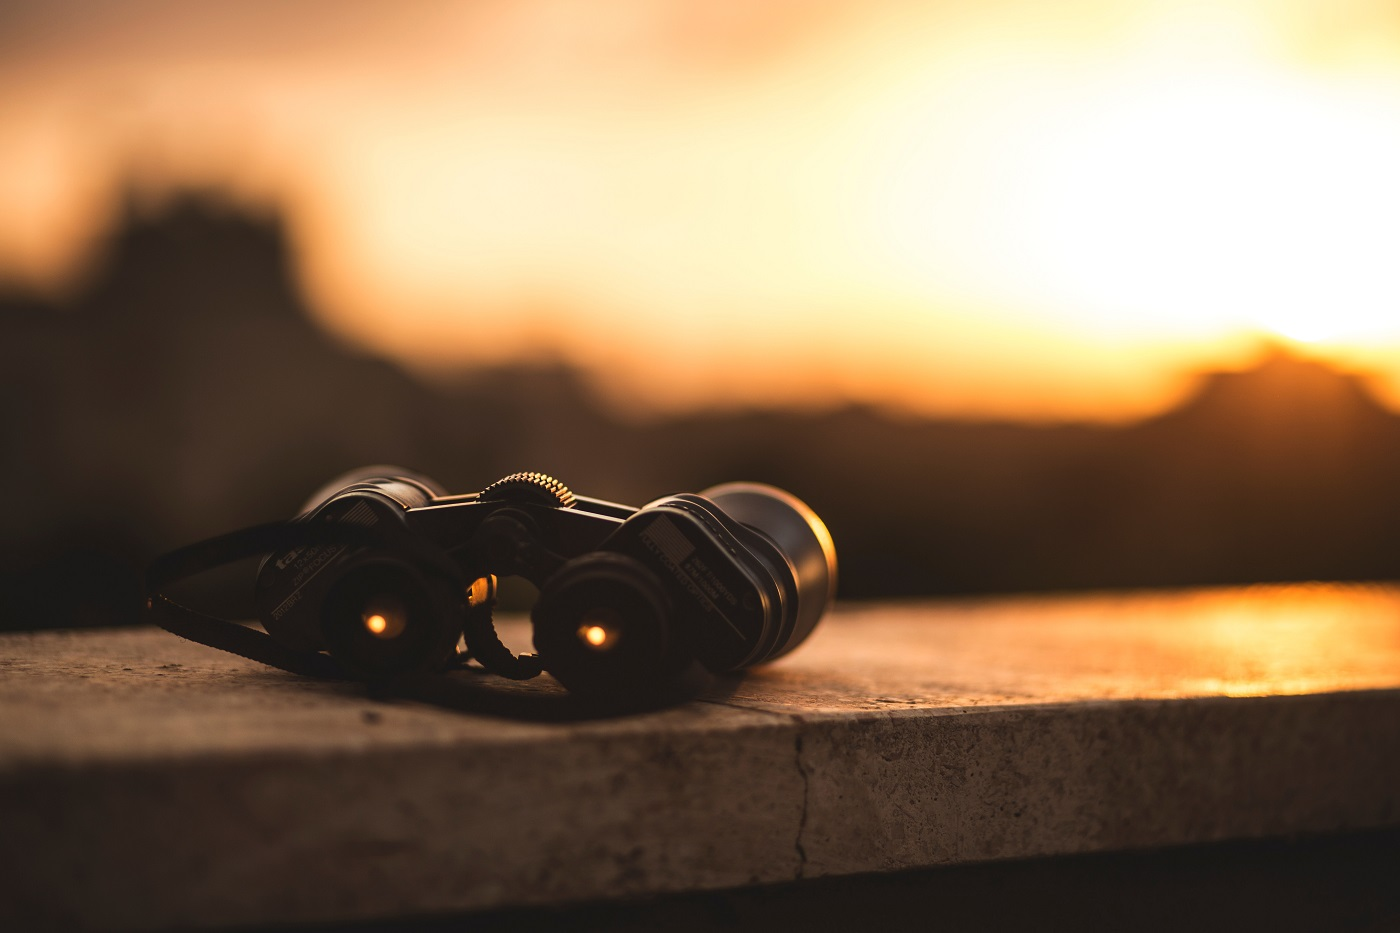 An in-depth review of the best Leica binoculars available in 2019.